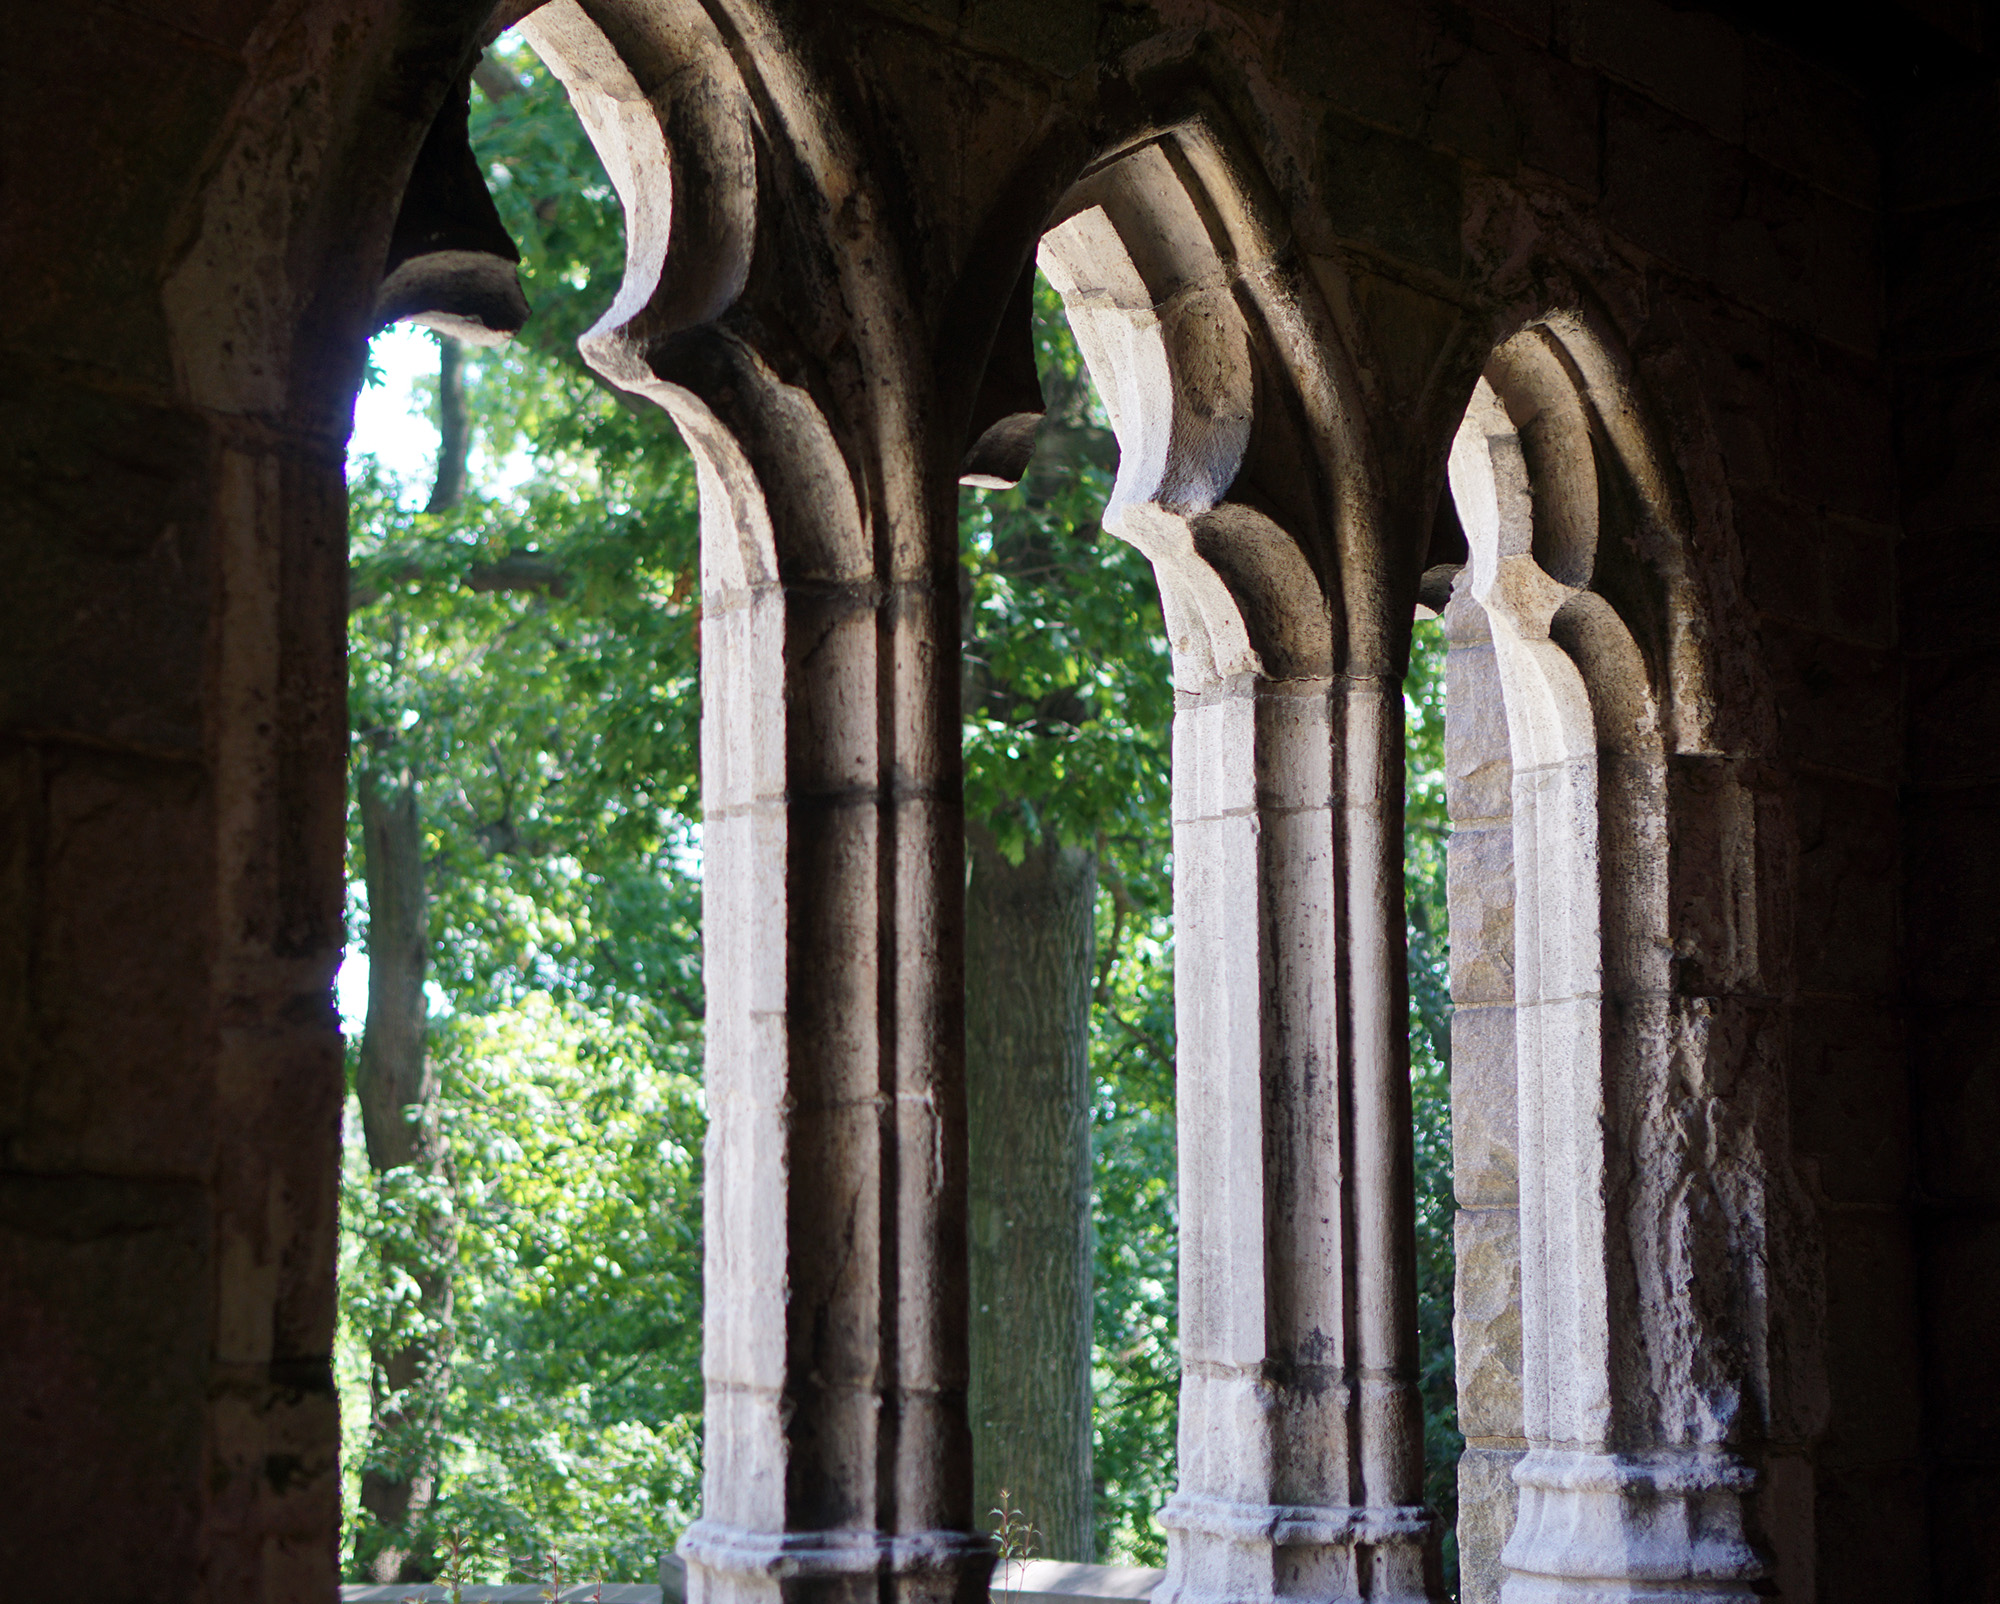 Trefoil arched windows at the Cloisters, New York City / Darker than Green